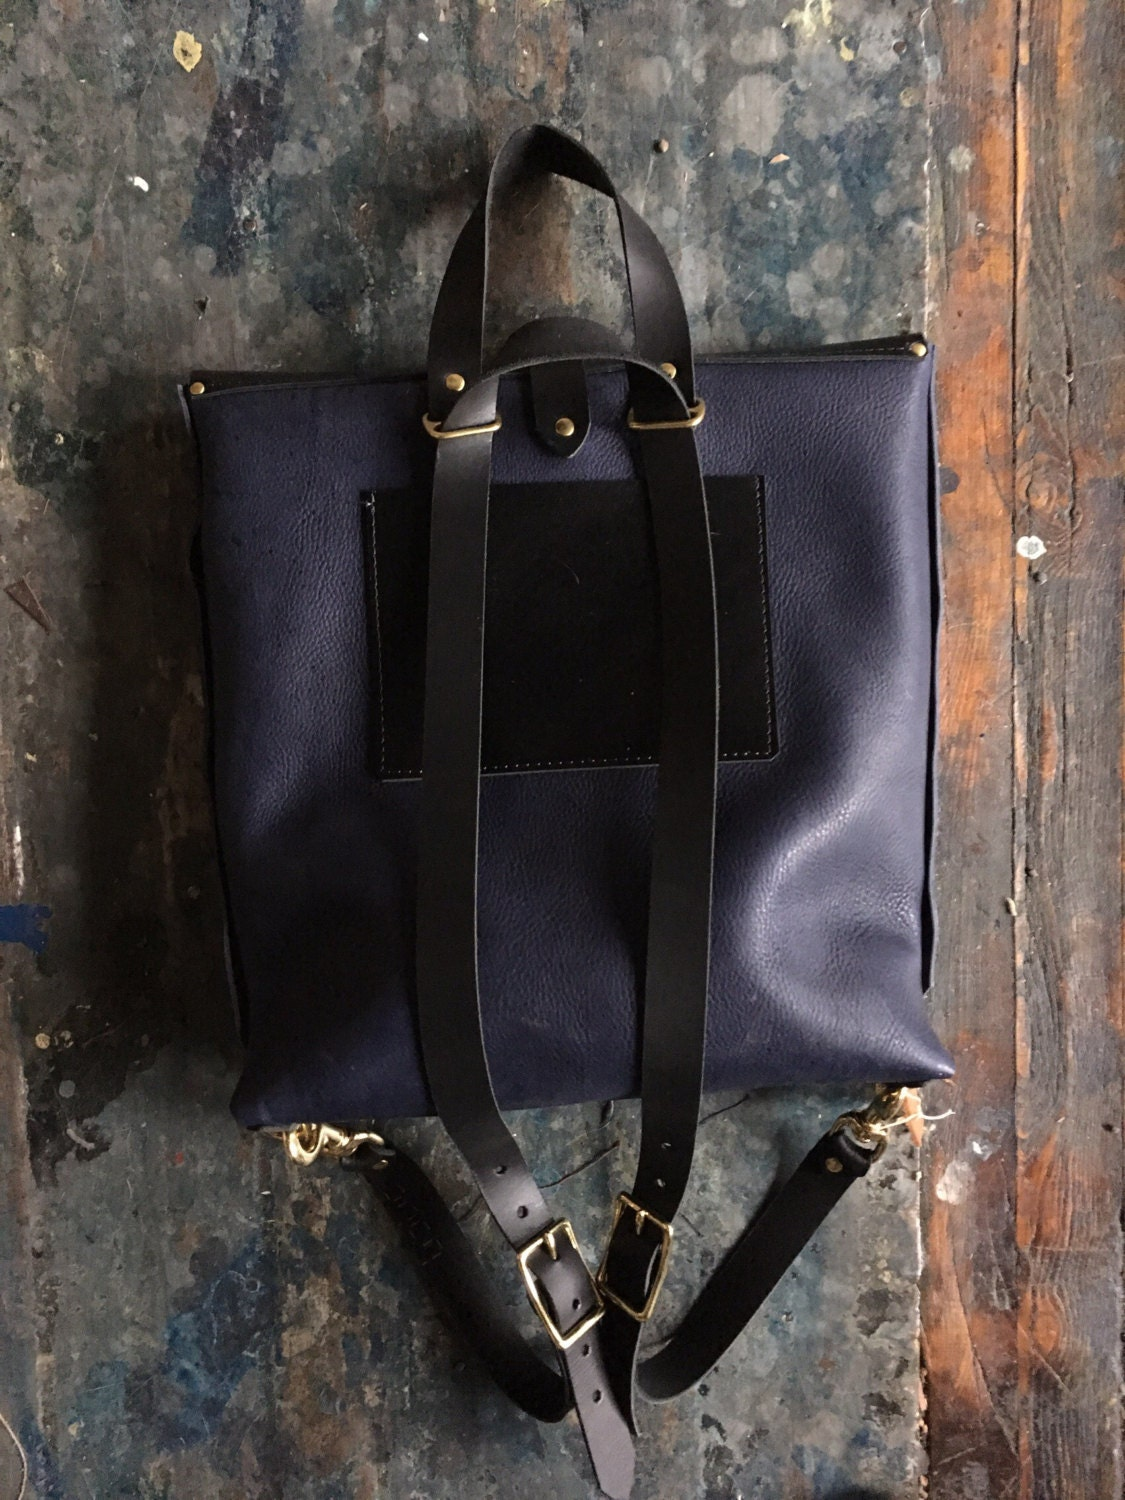 Limited edition pacific rucksack in indigo and black